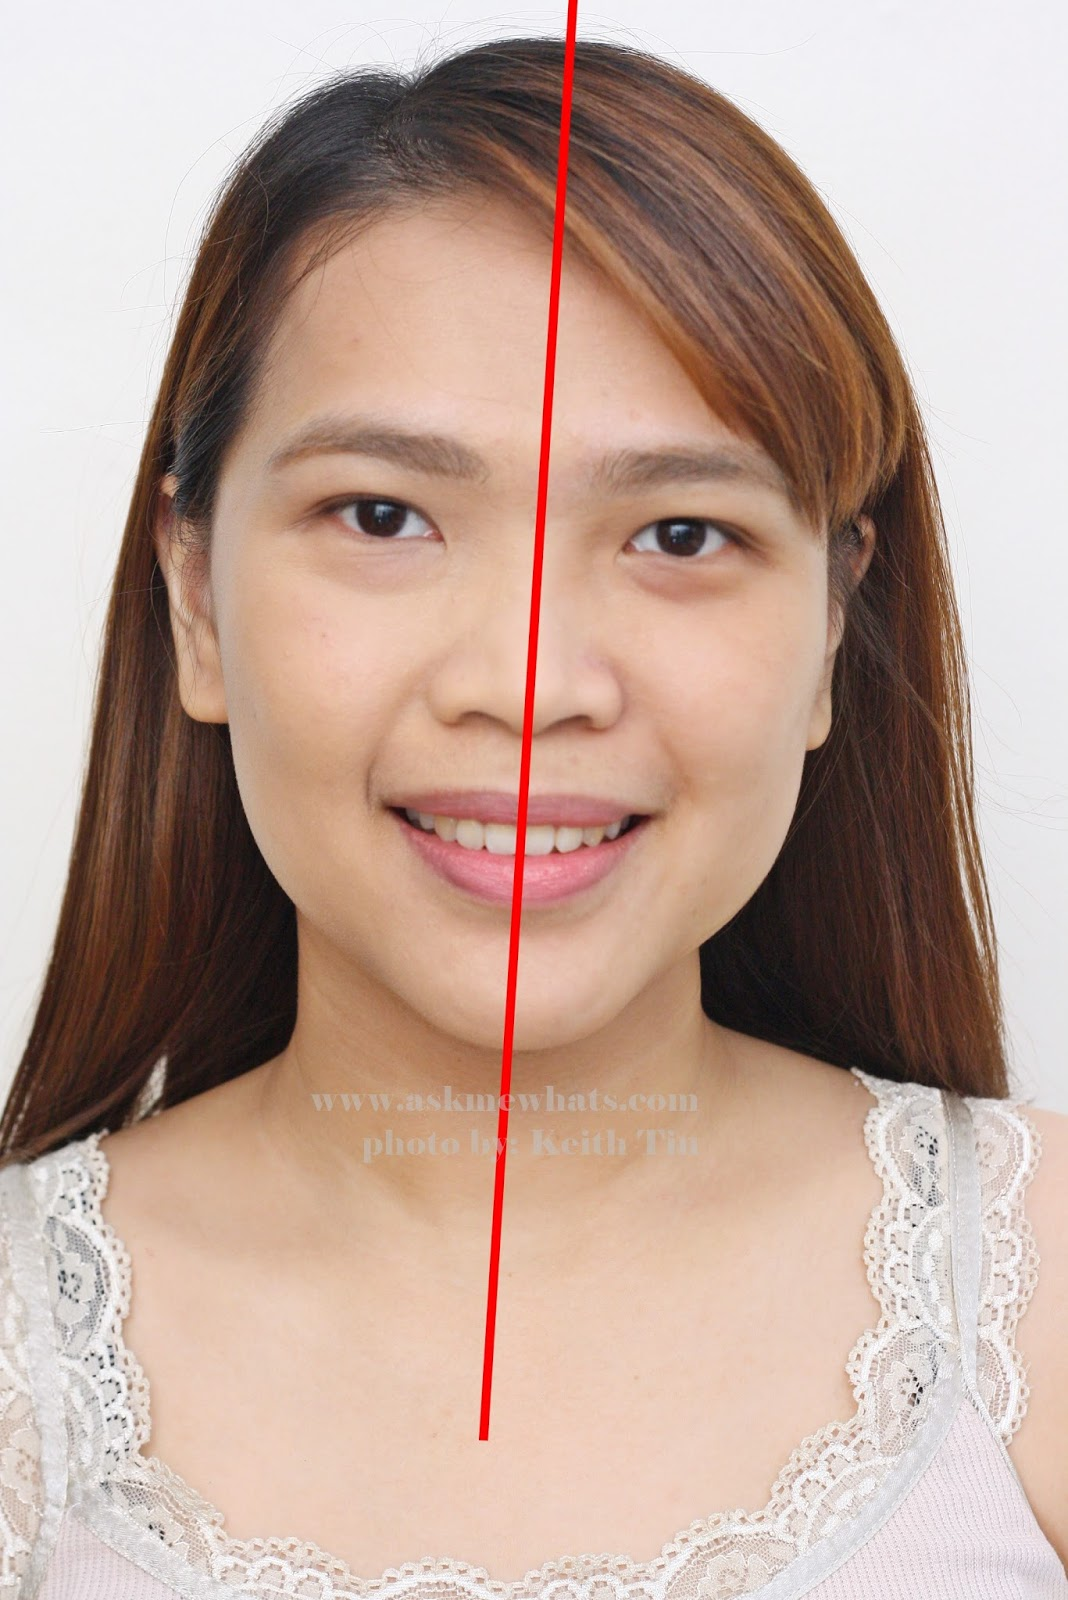 Max FactorX Skin Luminizer Foundation before and after photo